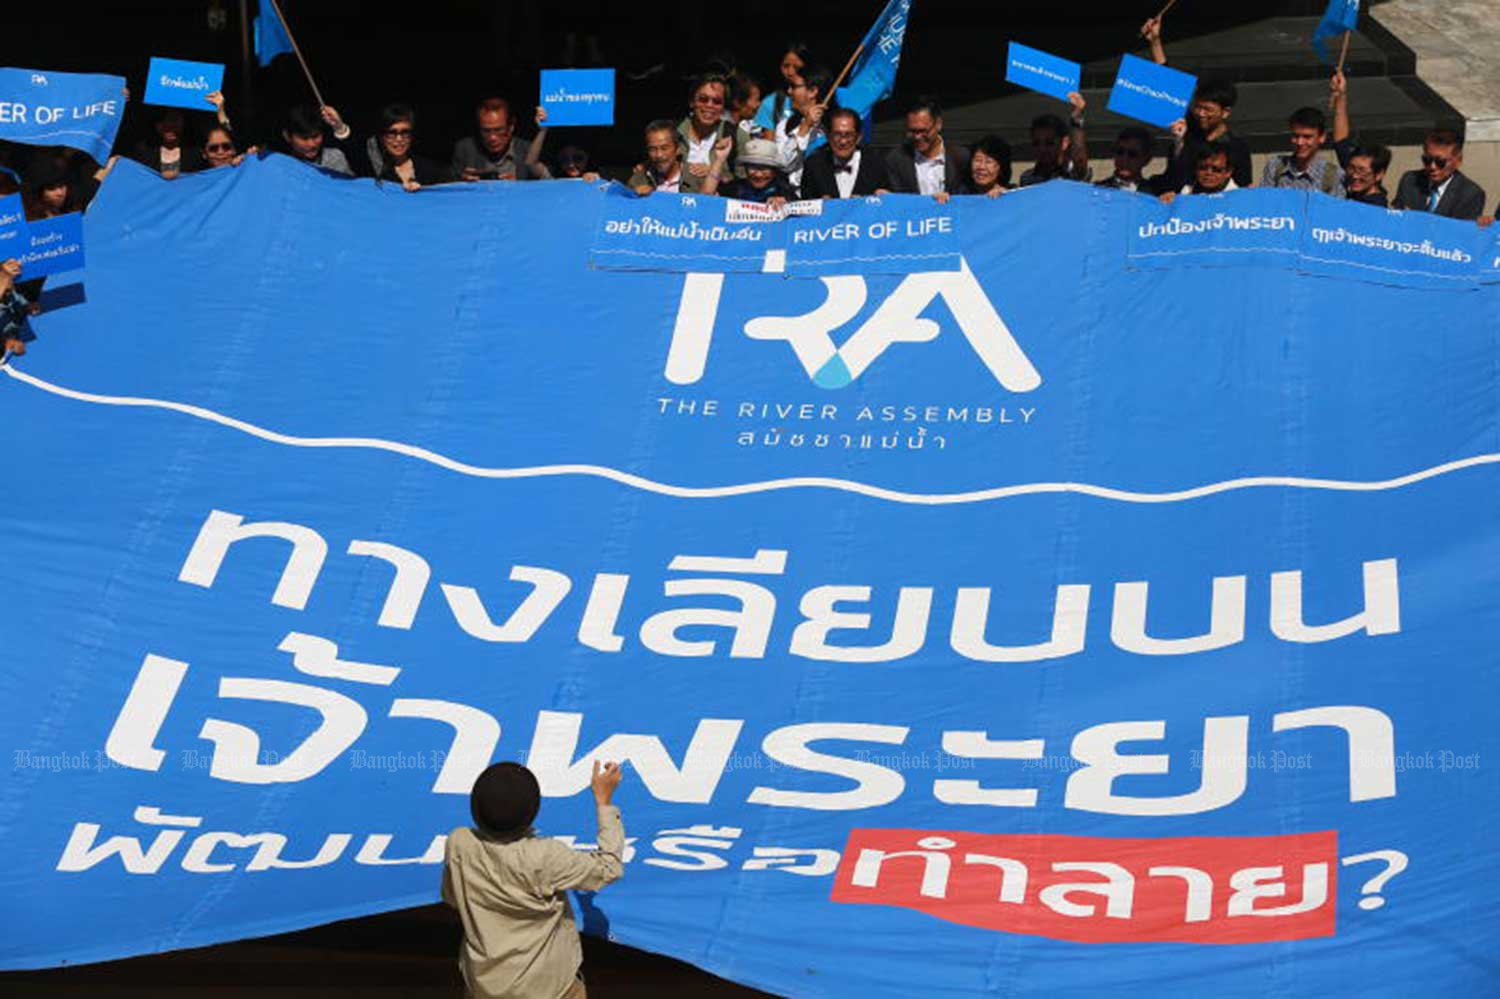 Activists join forces on Tuesday to protest against City Hall's plan to go ahead with the contentious Chao Phraya Riverside Promenade. The protest was held at the Bangkok Arts & Culture Centre. (Photo by Somchai Poomlard)